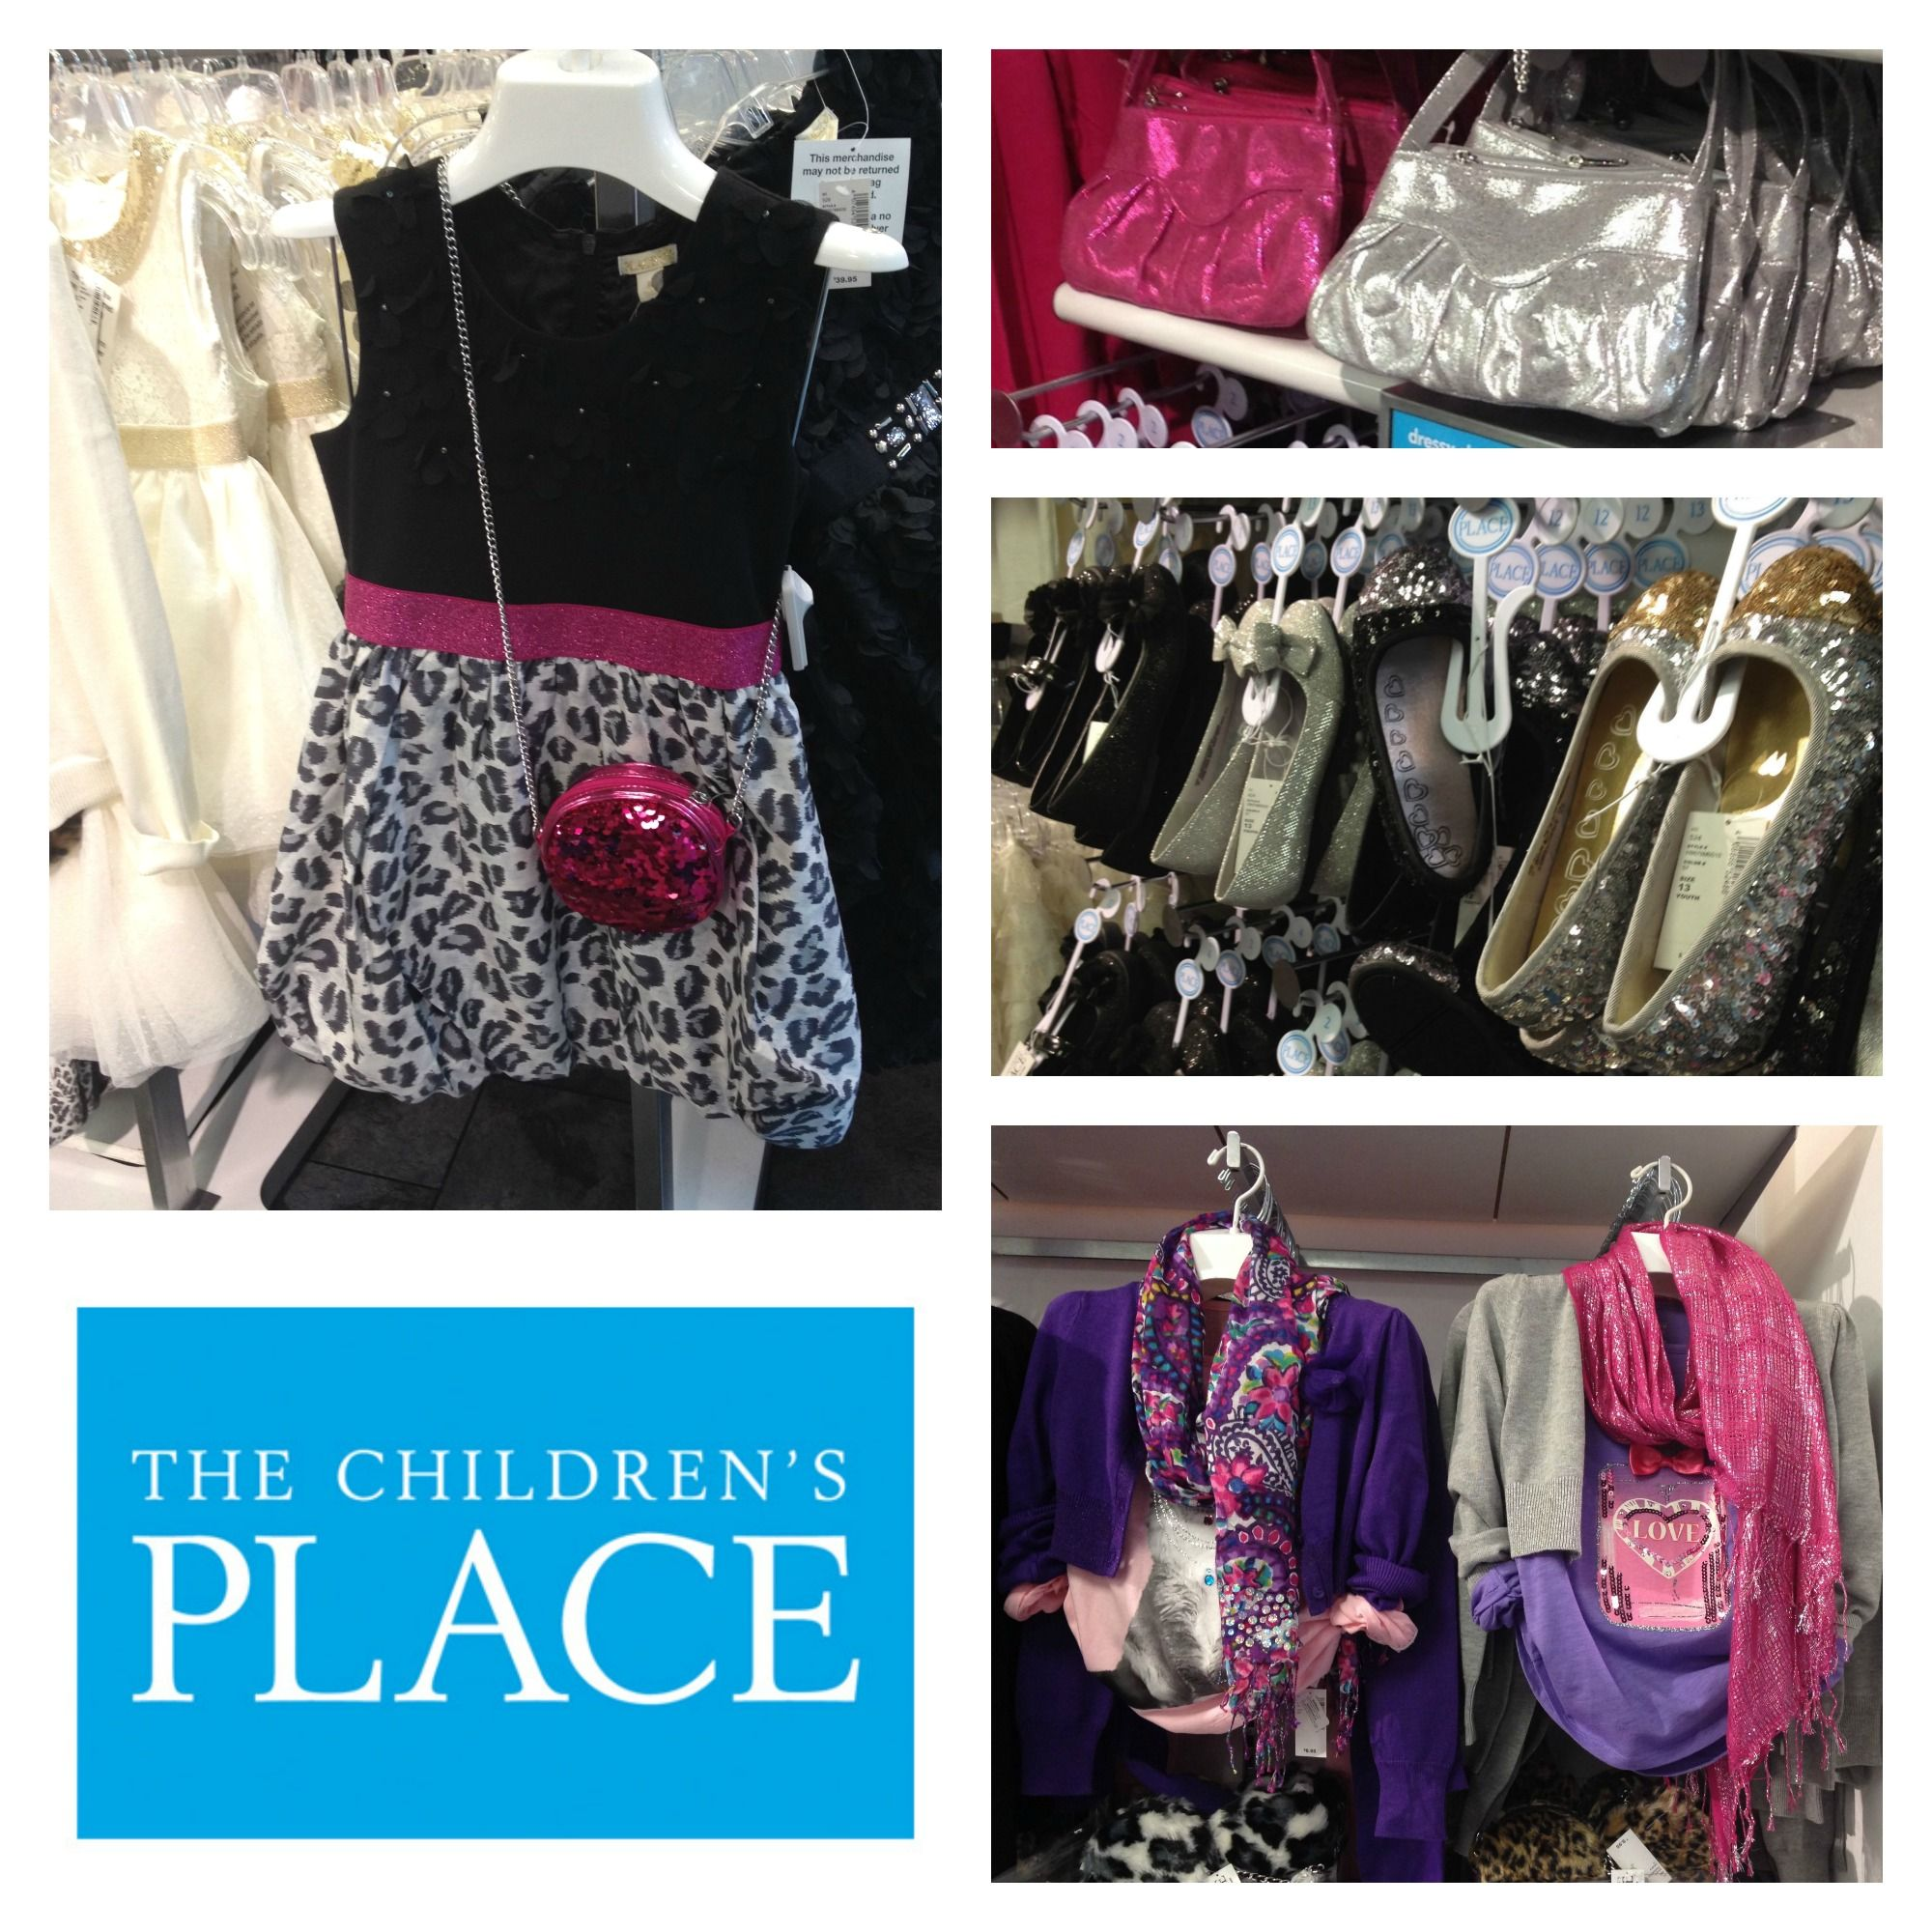 e02f3bb1cd28 WIN a $25 gift card to The Children's Place and check out their 2013 holiday  trends - SanAntonioMomBlogs.com